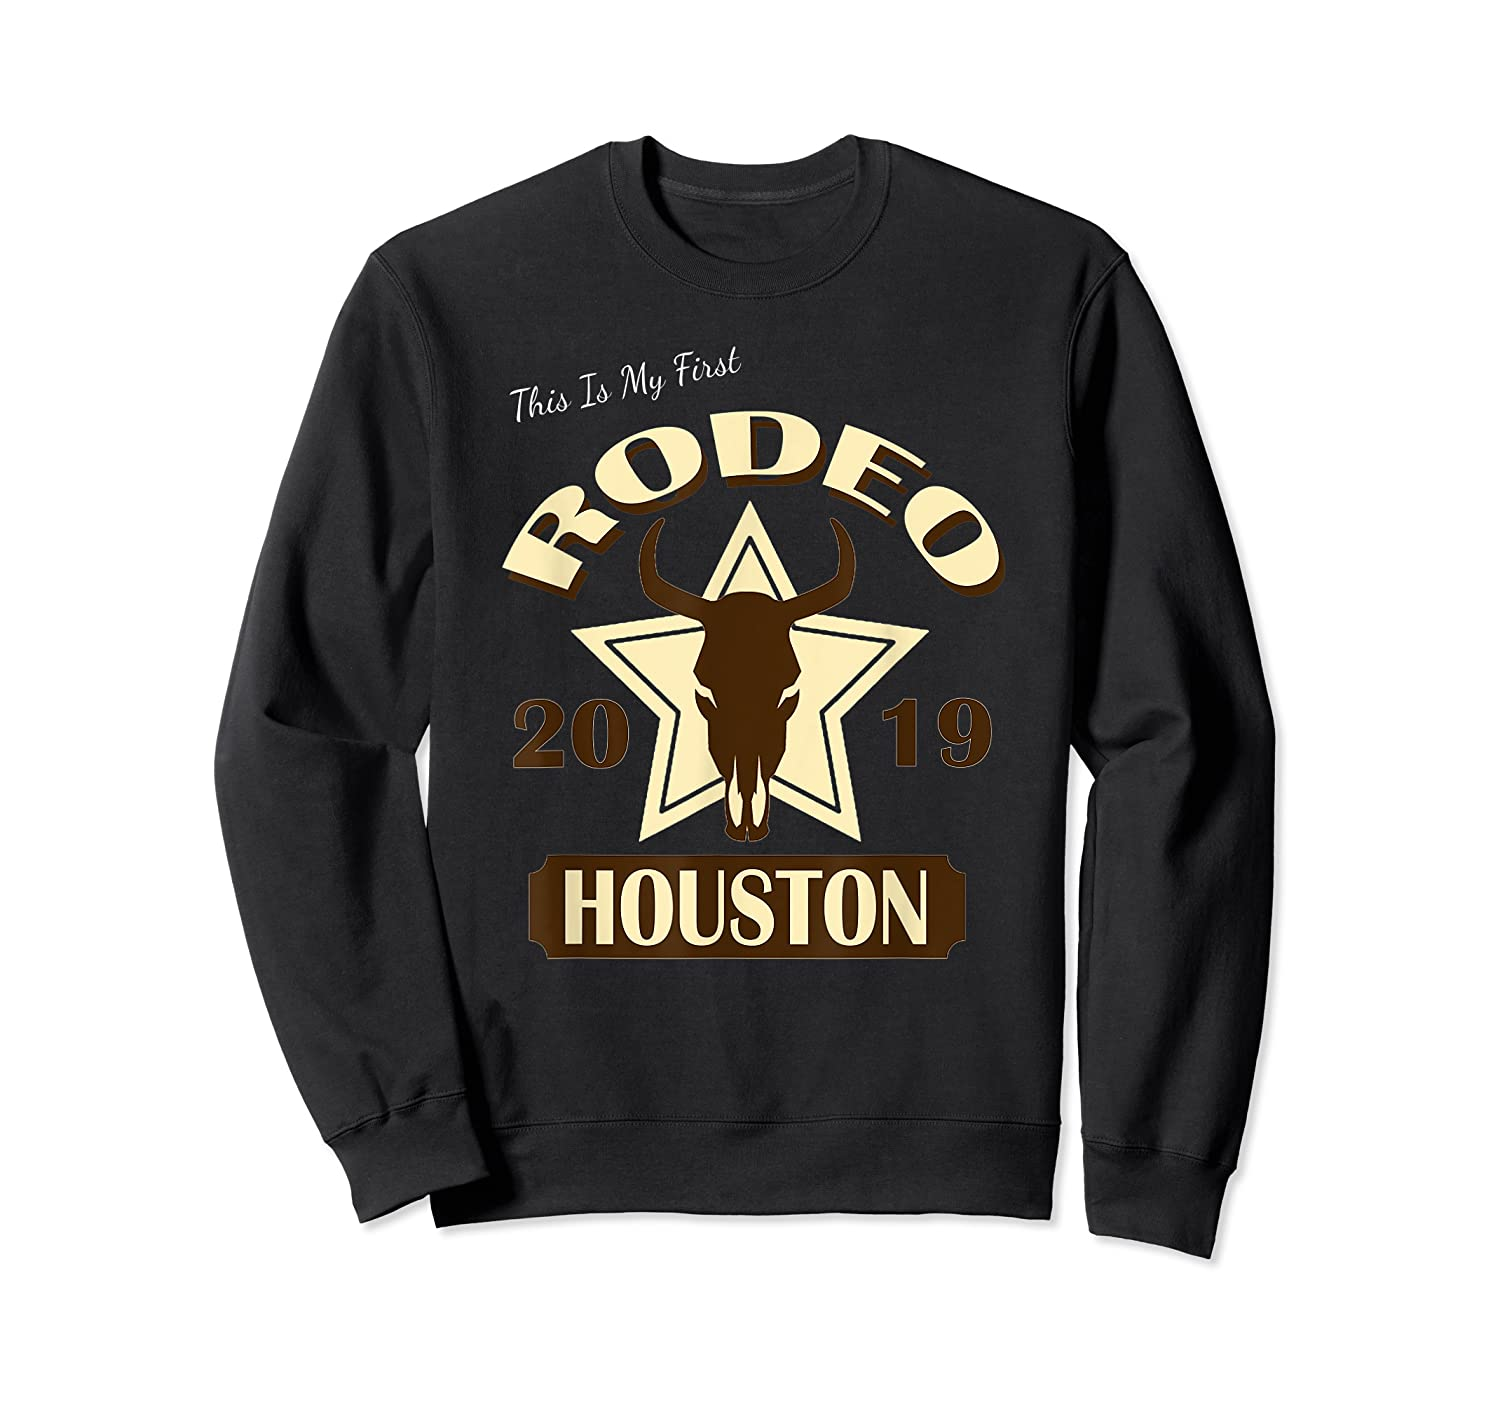 Rodeo 2019 T Shirt This Is My First Houston Rodeo Crewneck Sweater